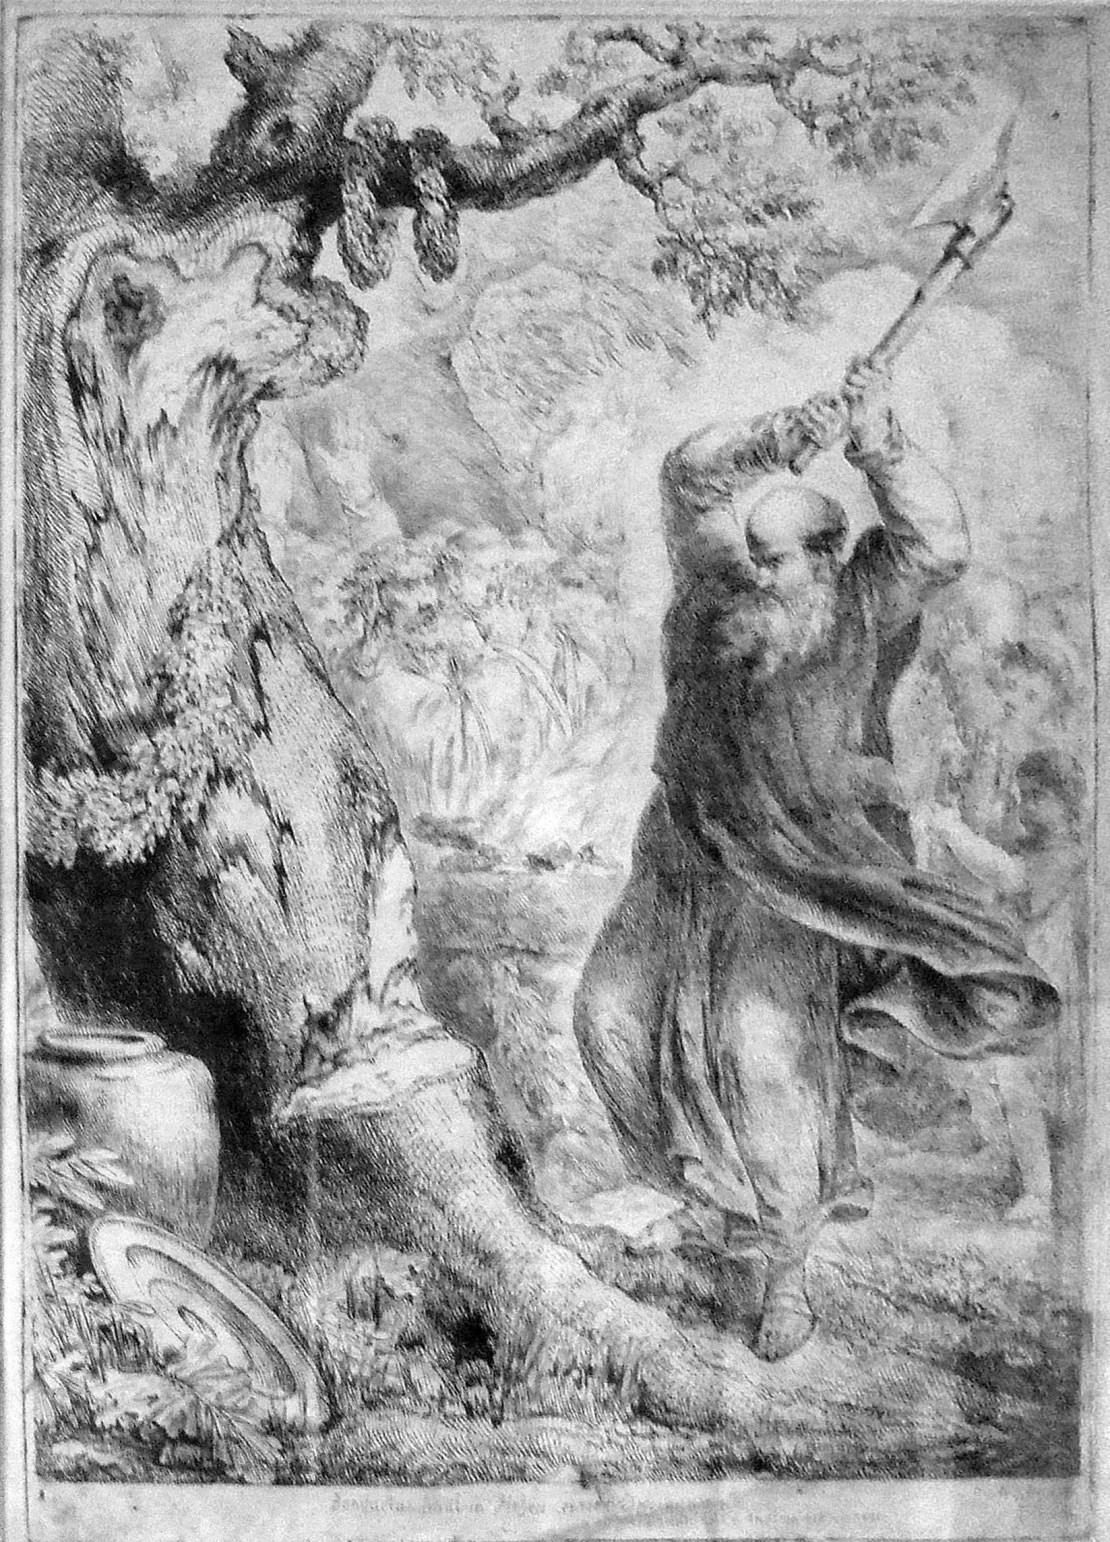 An engraving depicting a bearded man swinging an axe at an oak tree.